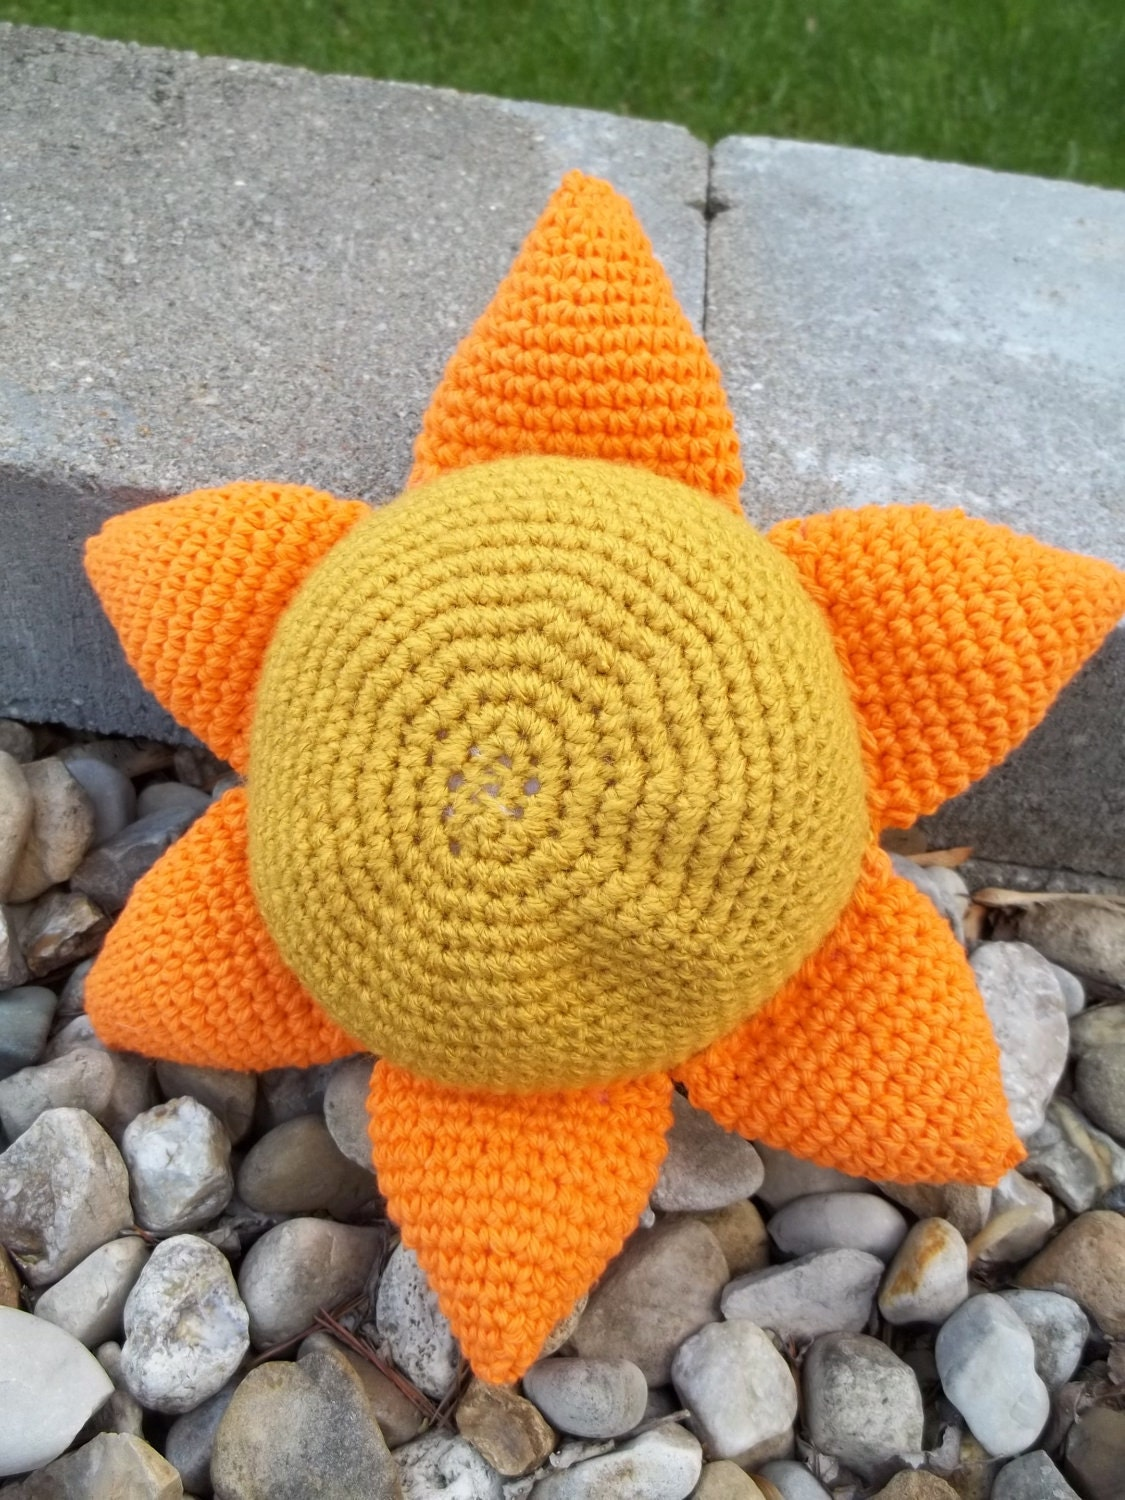 OOAK Crocheted Plush Sunshine - sunshineknitandsew